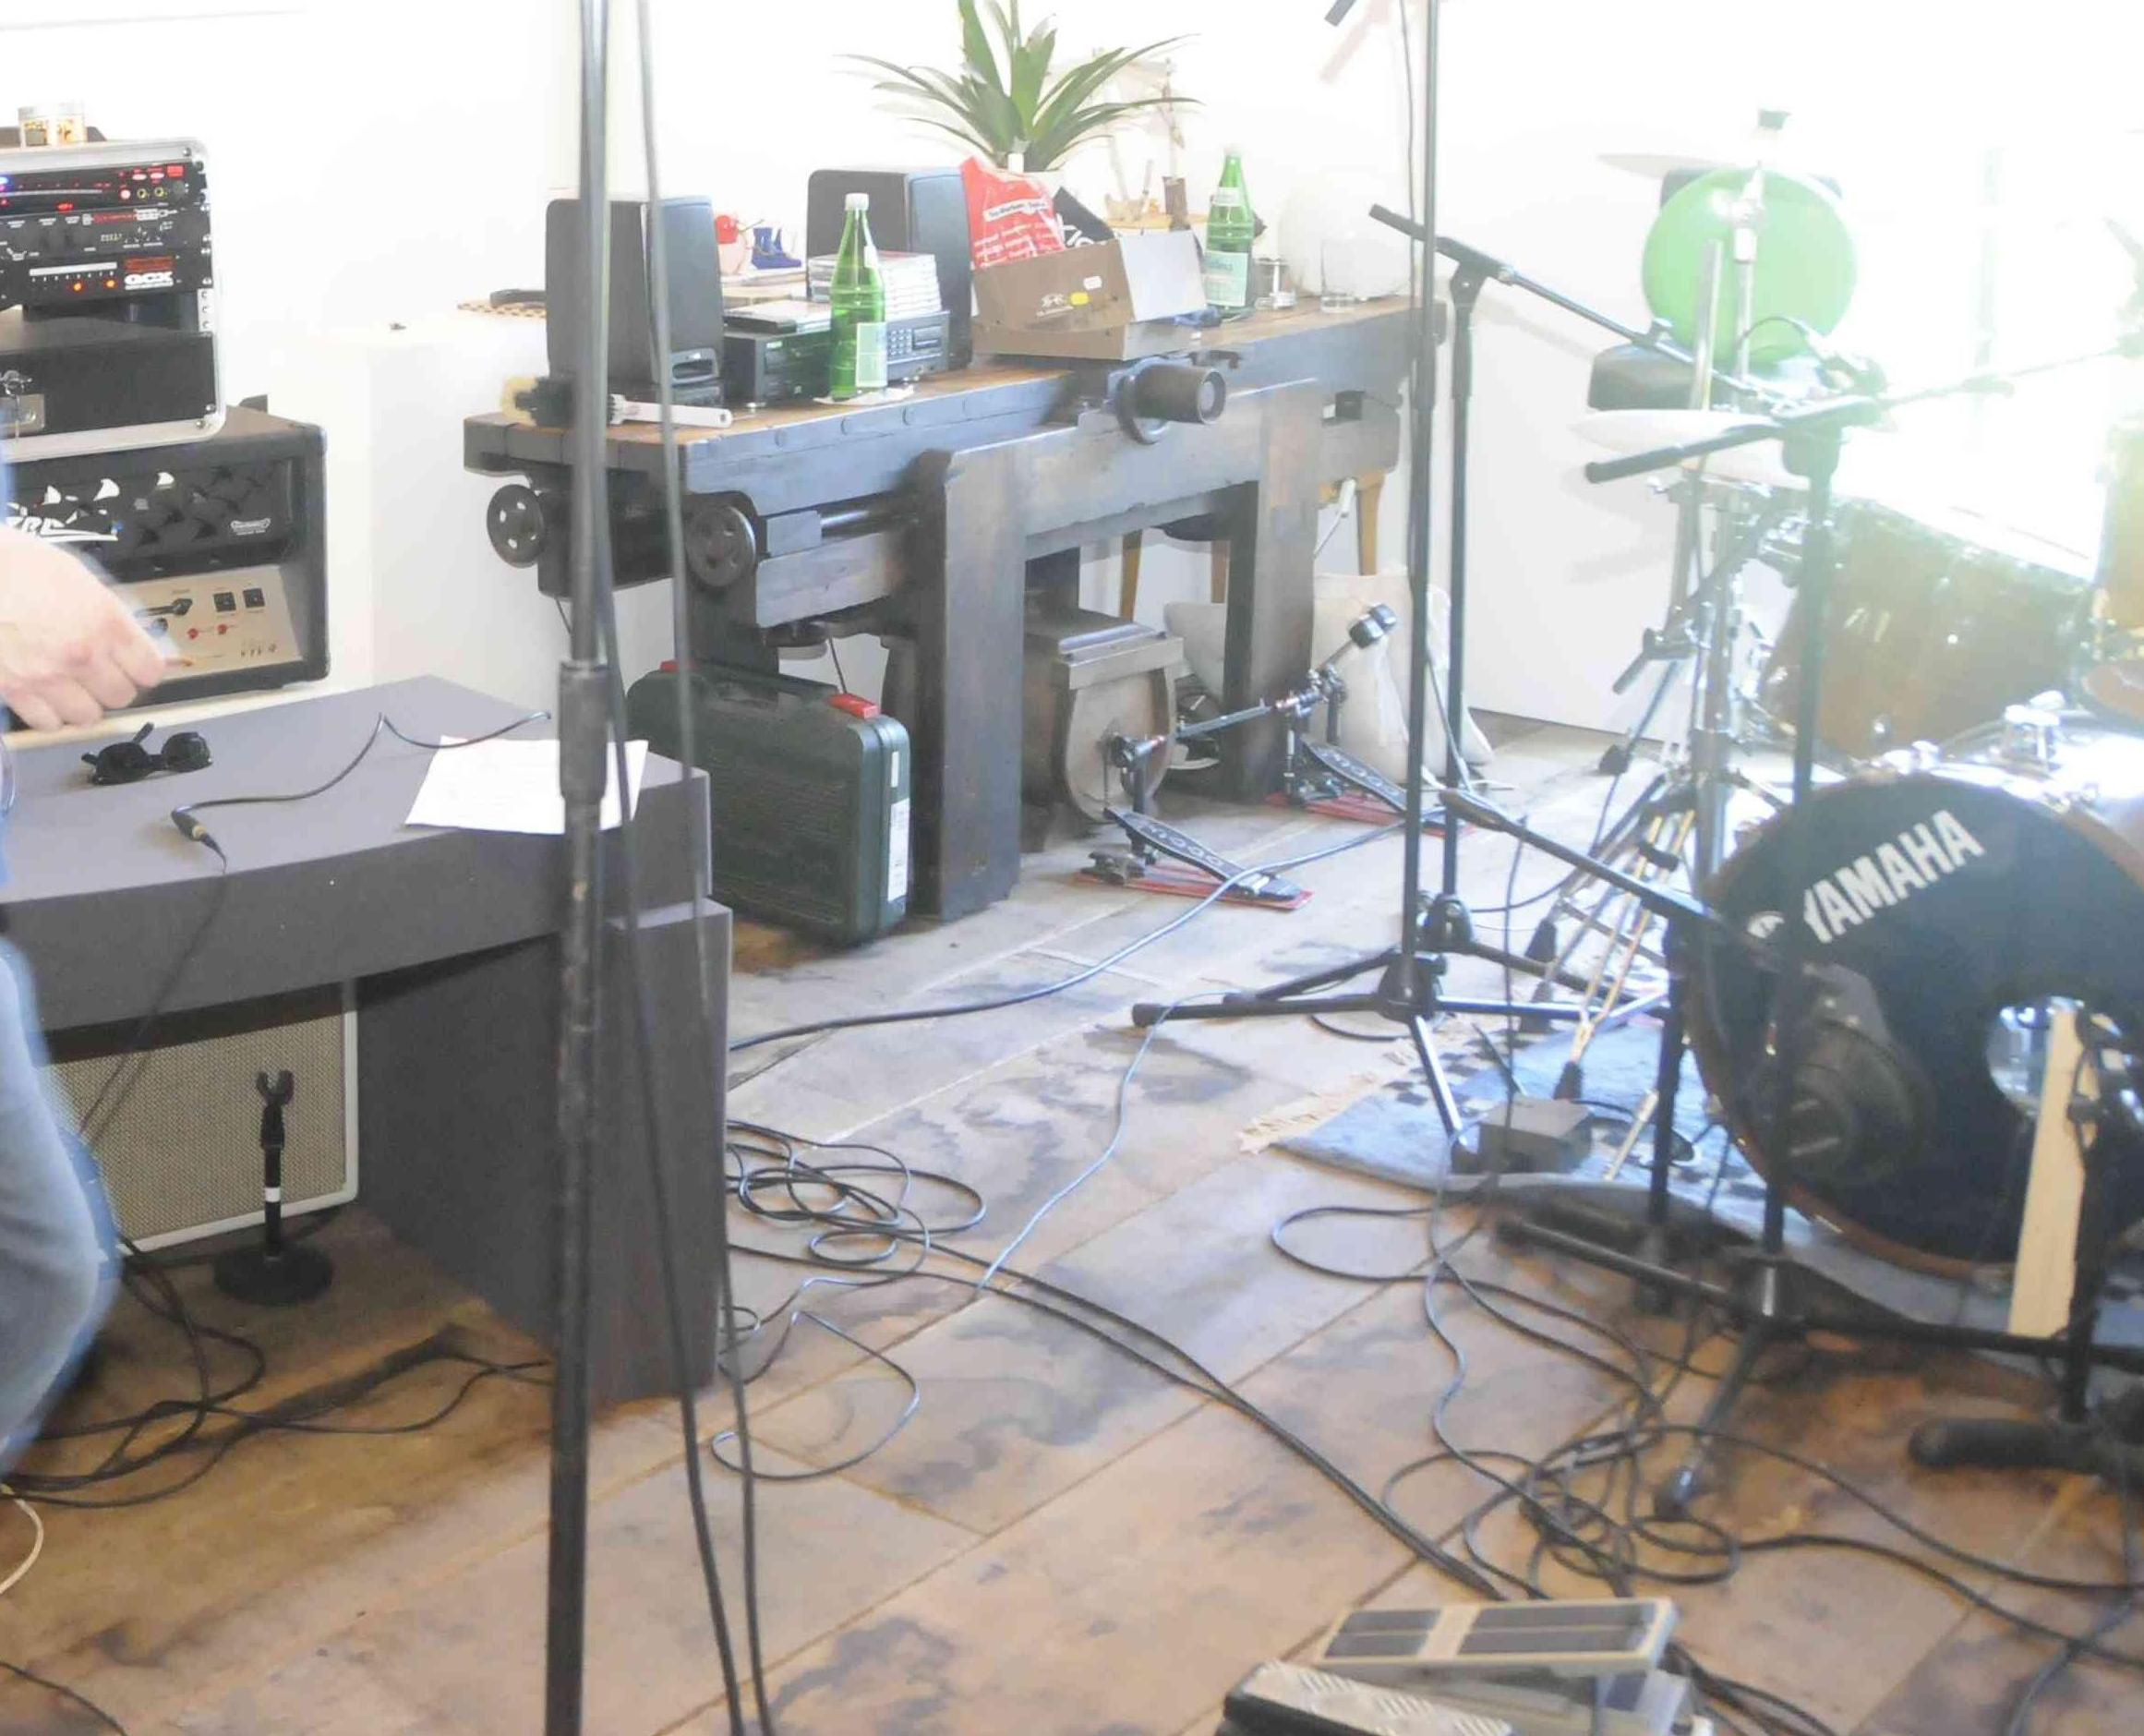 Recording an electric guitar and drummer one room - Gearslutz.